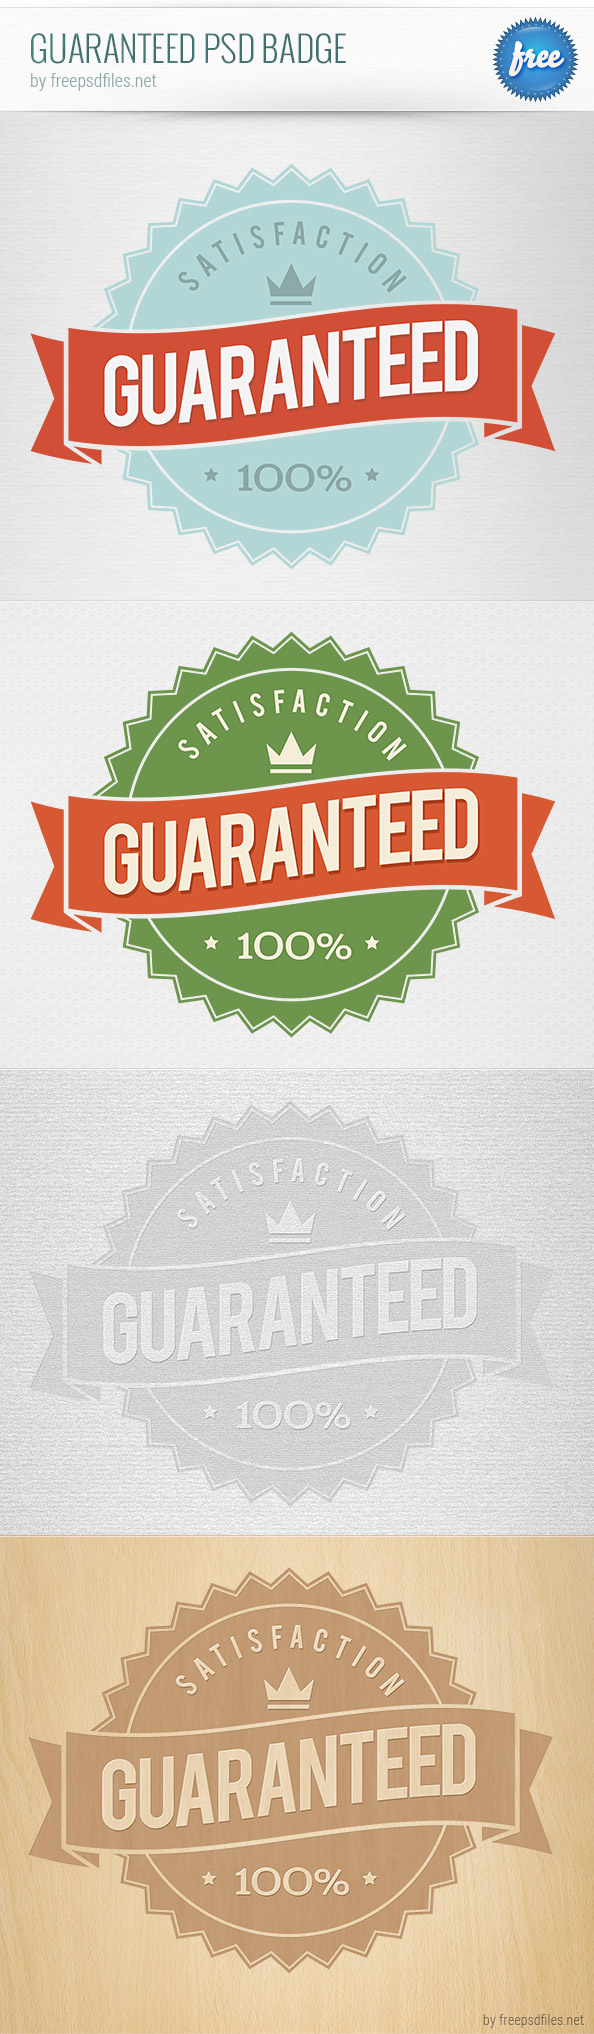 Guaranteed PSD Badge Preview